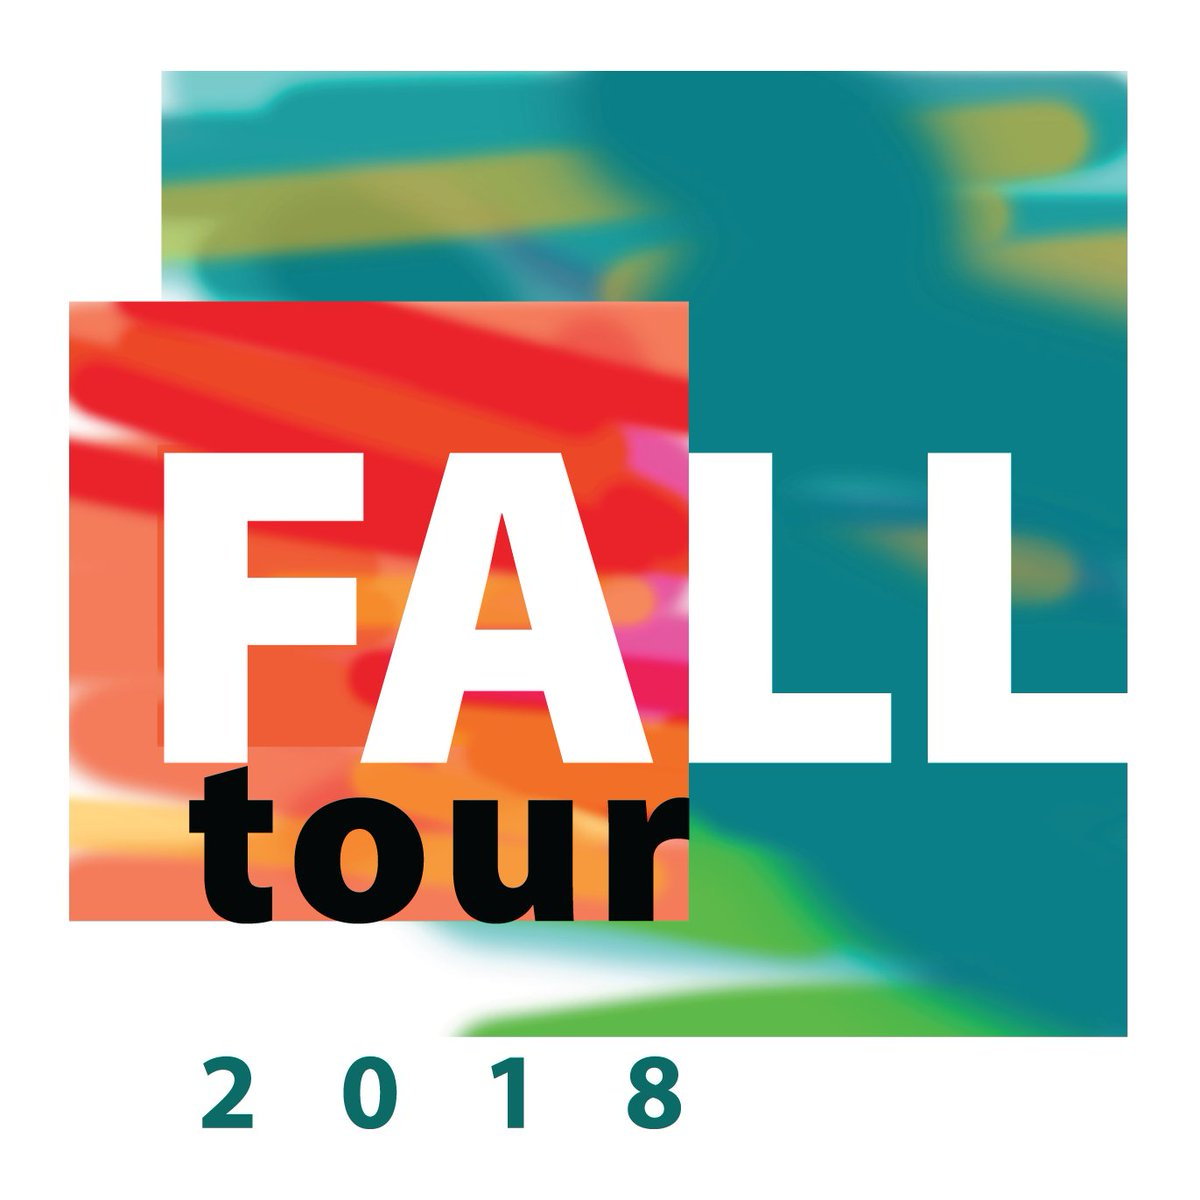 RNAO wants to hear from you. Tell us what nursing, health or health-care issues are affecting you and your practice. Join us for our #RNAOfalltour visit at North York Civic Centre on Oct. 23 at 6:30 p.m. Register online: https://t.co/mDW9zIFrf5